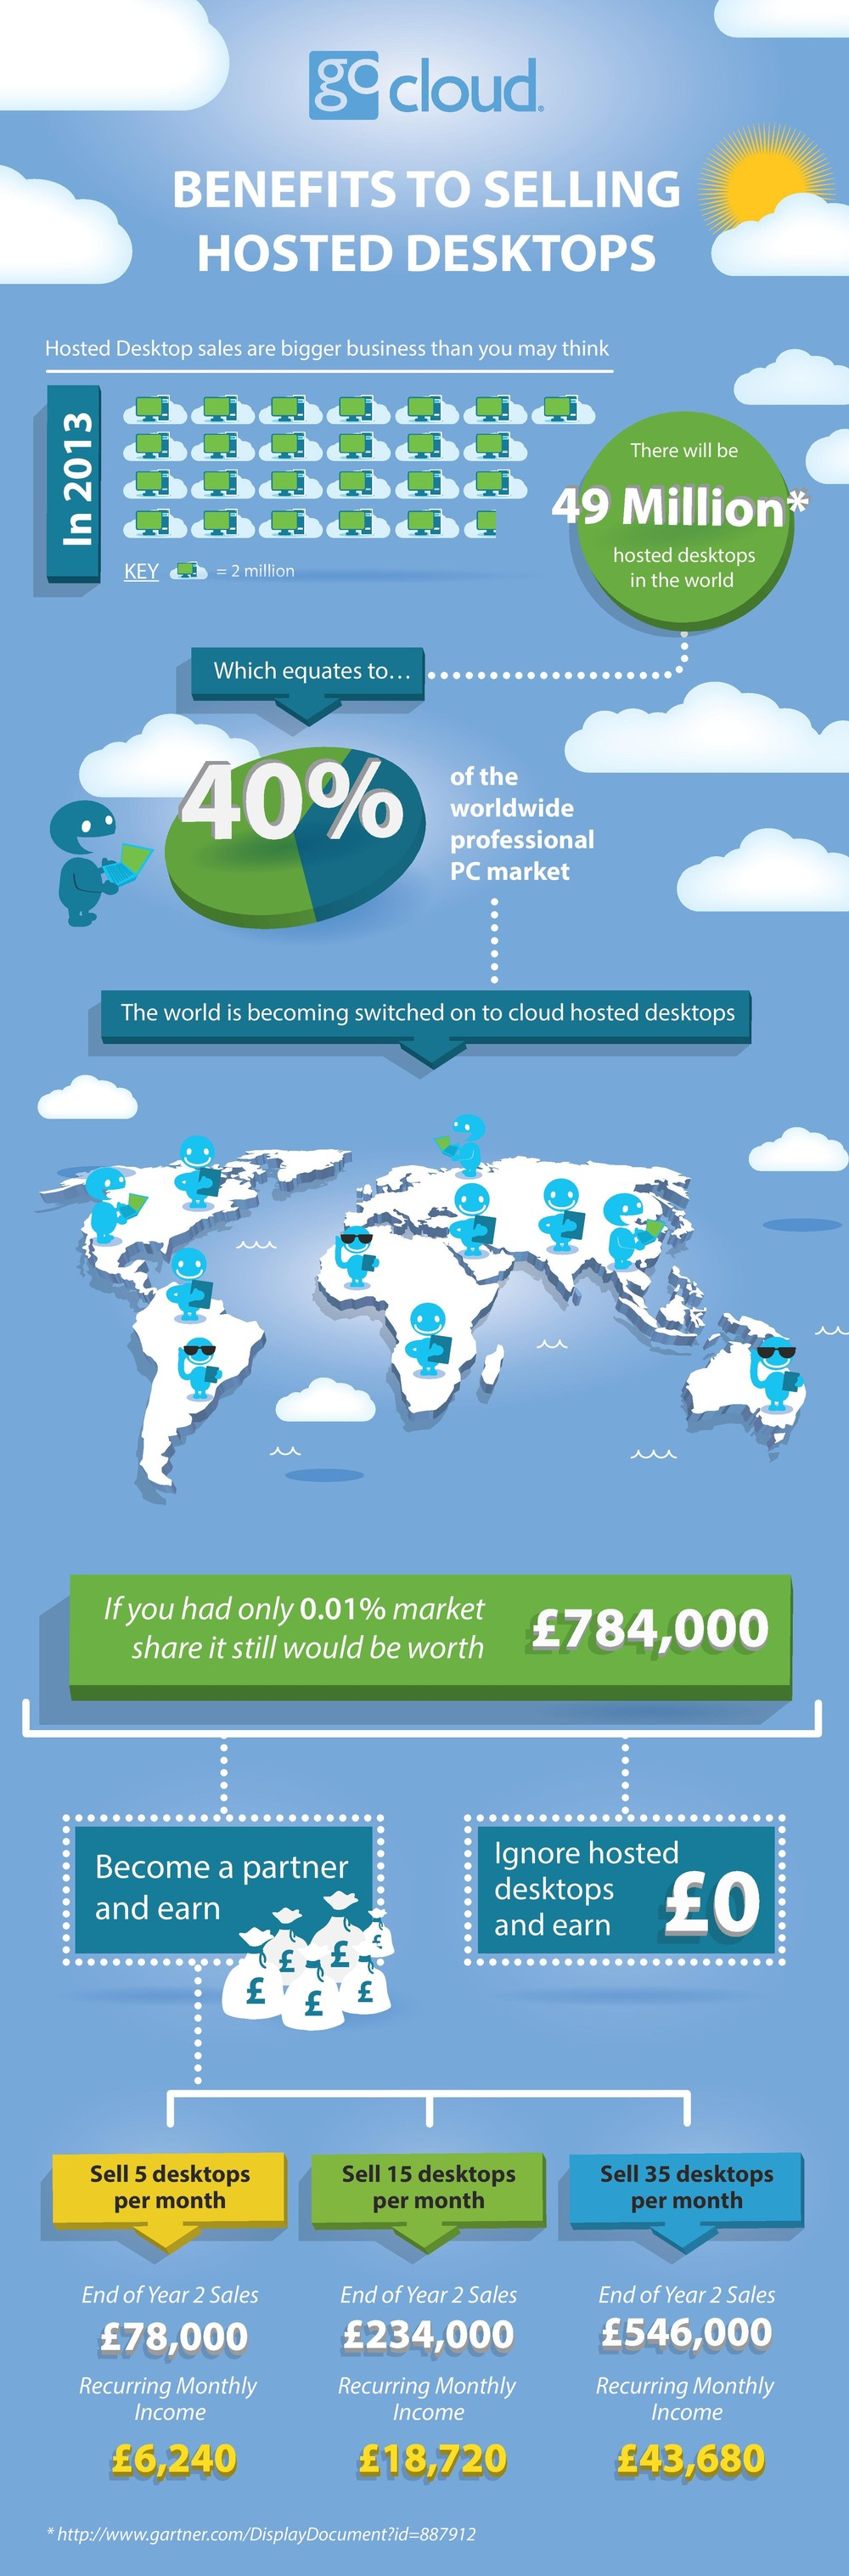 Benefits to selling hosted desktops - GoCloud Infographic